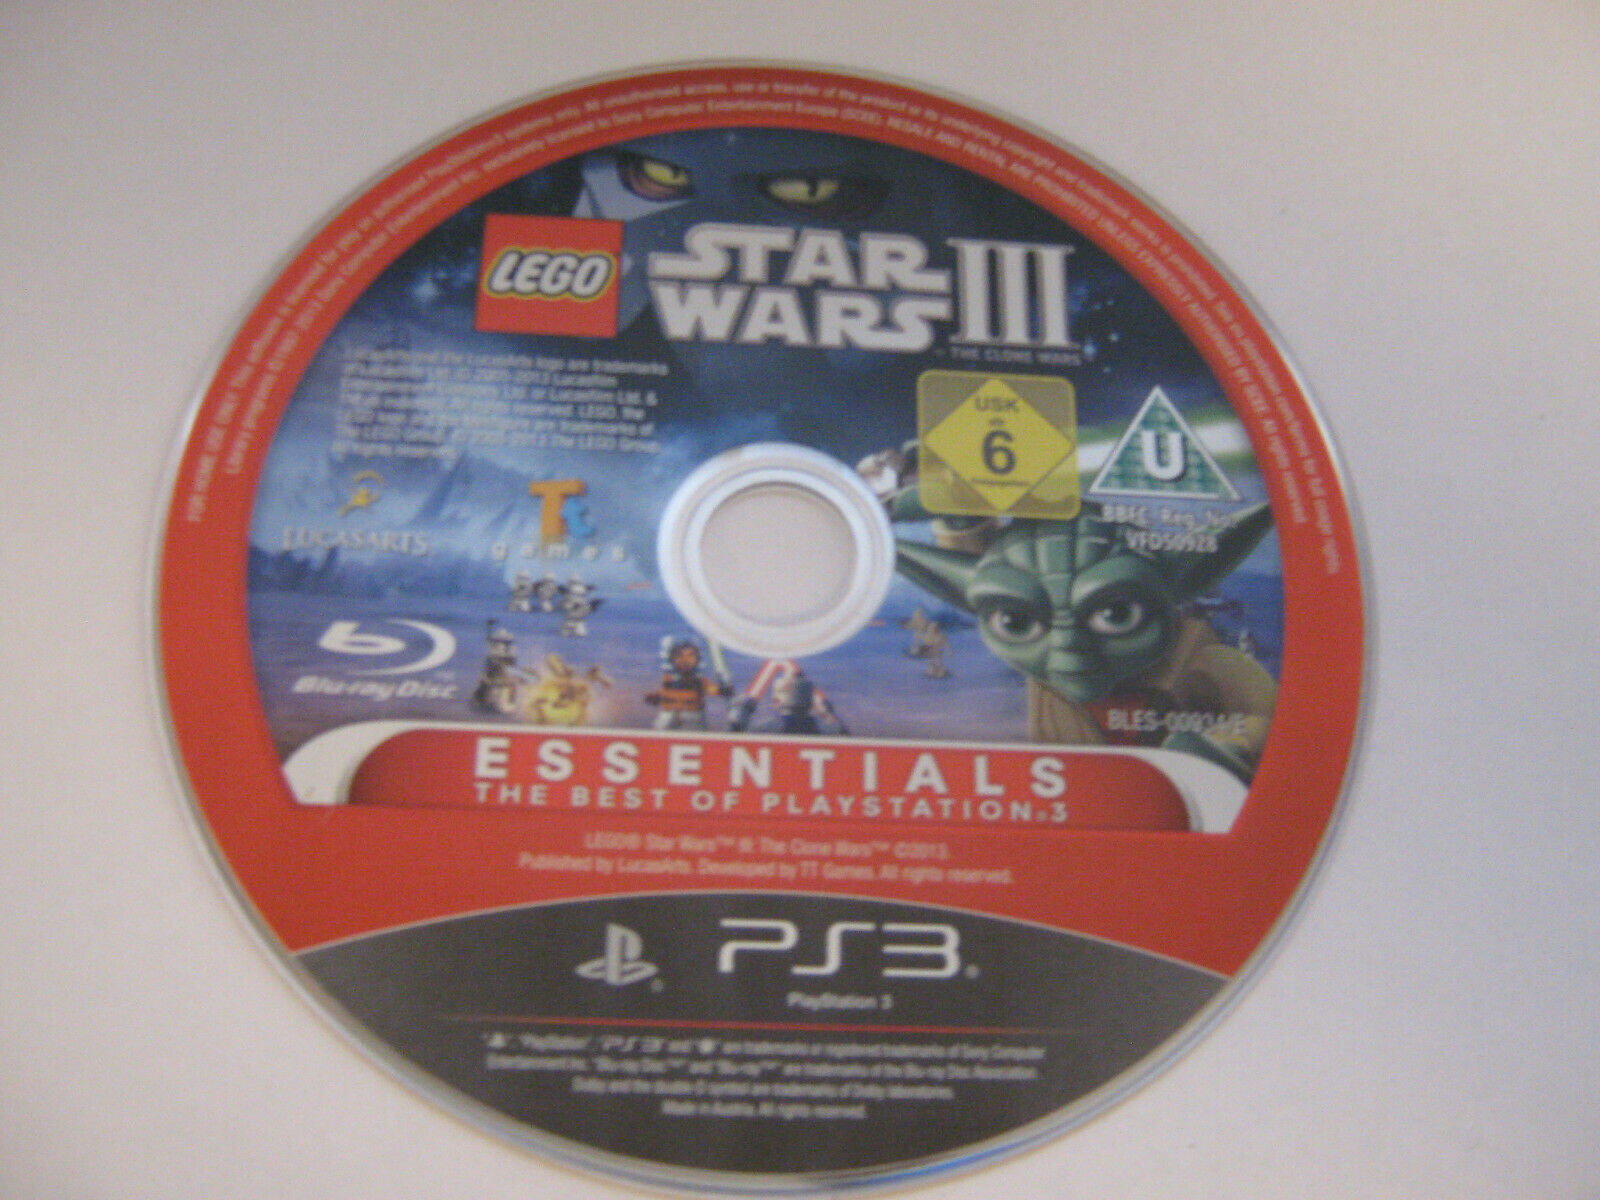 LEGO Star Wars III (3) (Ps3) *Game Only* - Bonne affaire StarWars